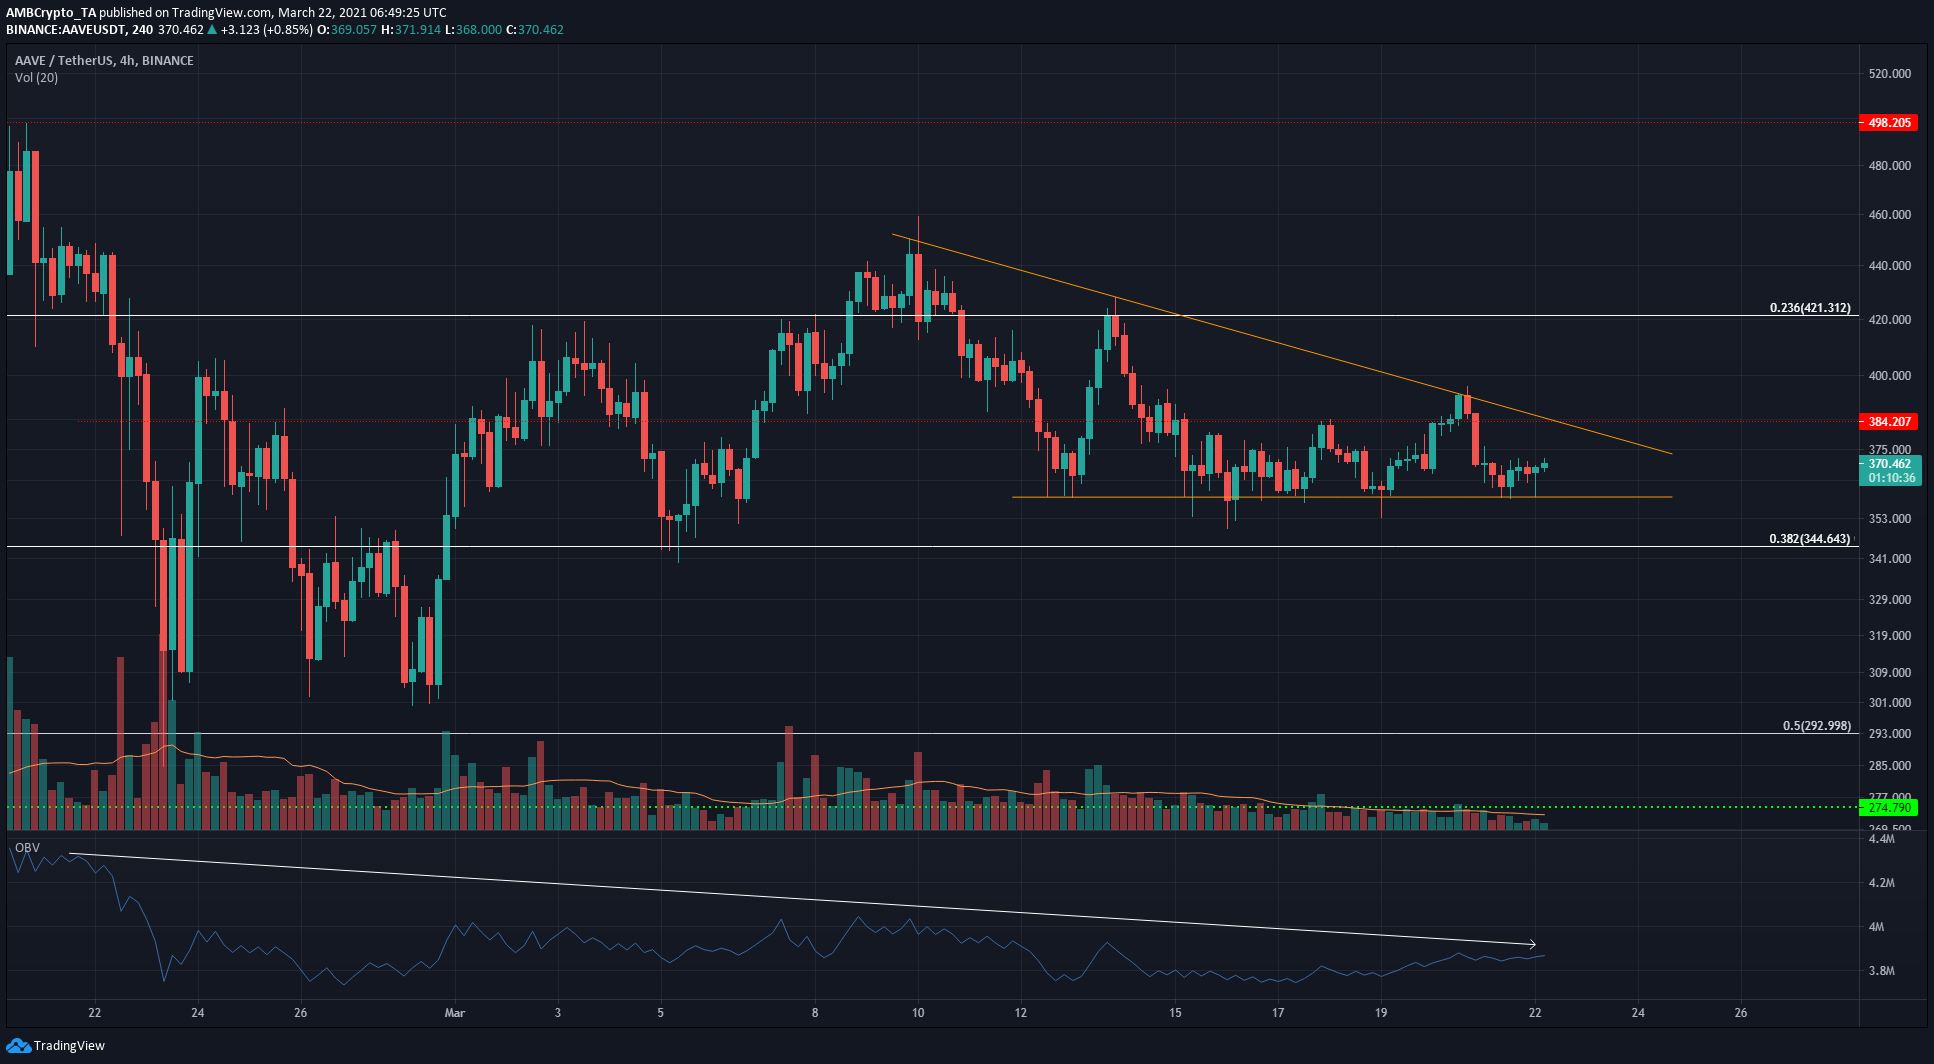 Chainlink, Aave, Synthetix Price Analysis: 22 March